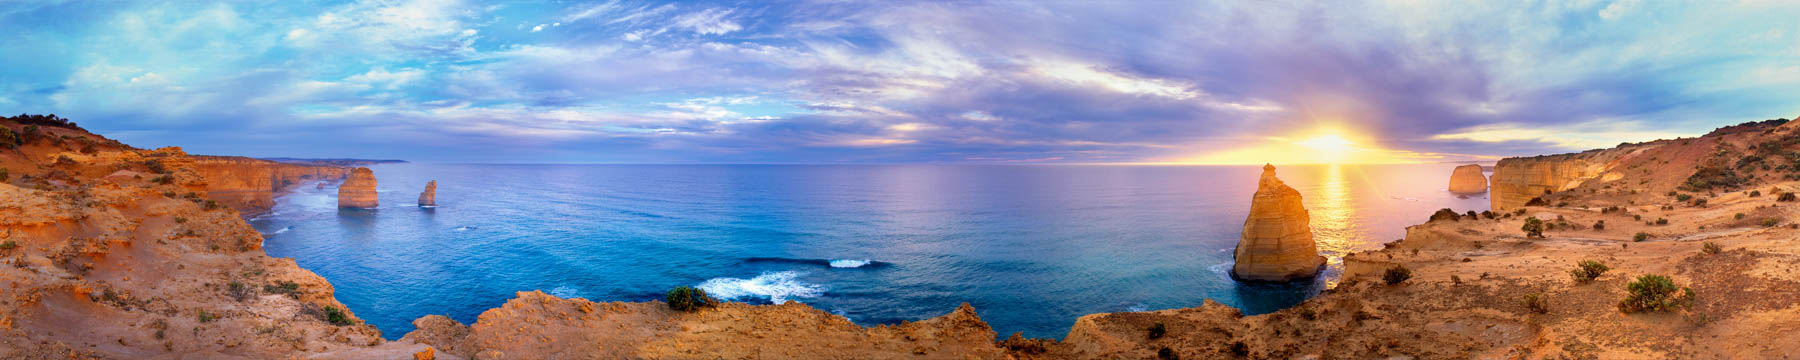 A 240 degree view of The Twelve Apostles at sunset, Vicroria, Australia.